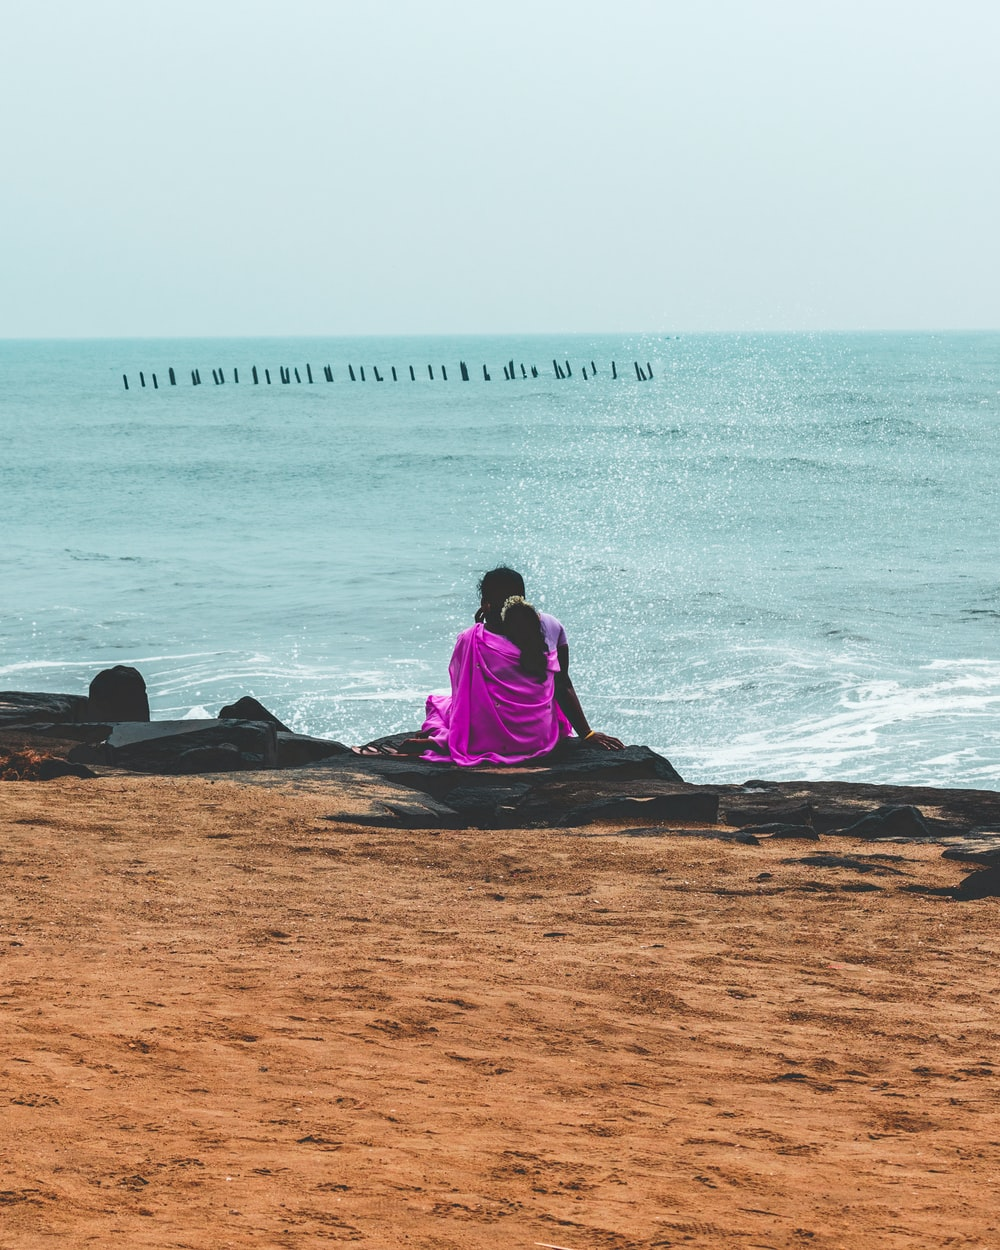 woman in purple long sleeve shirt sitting on brown sand near body of water during daytime